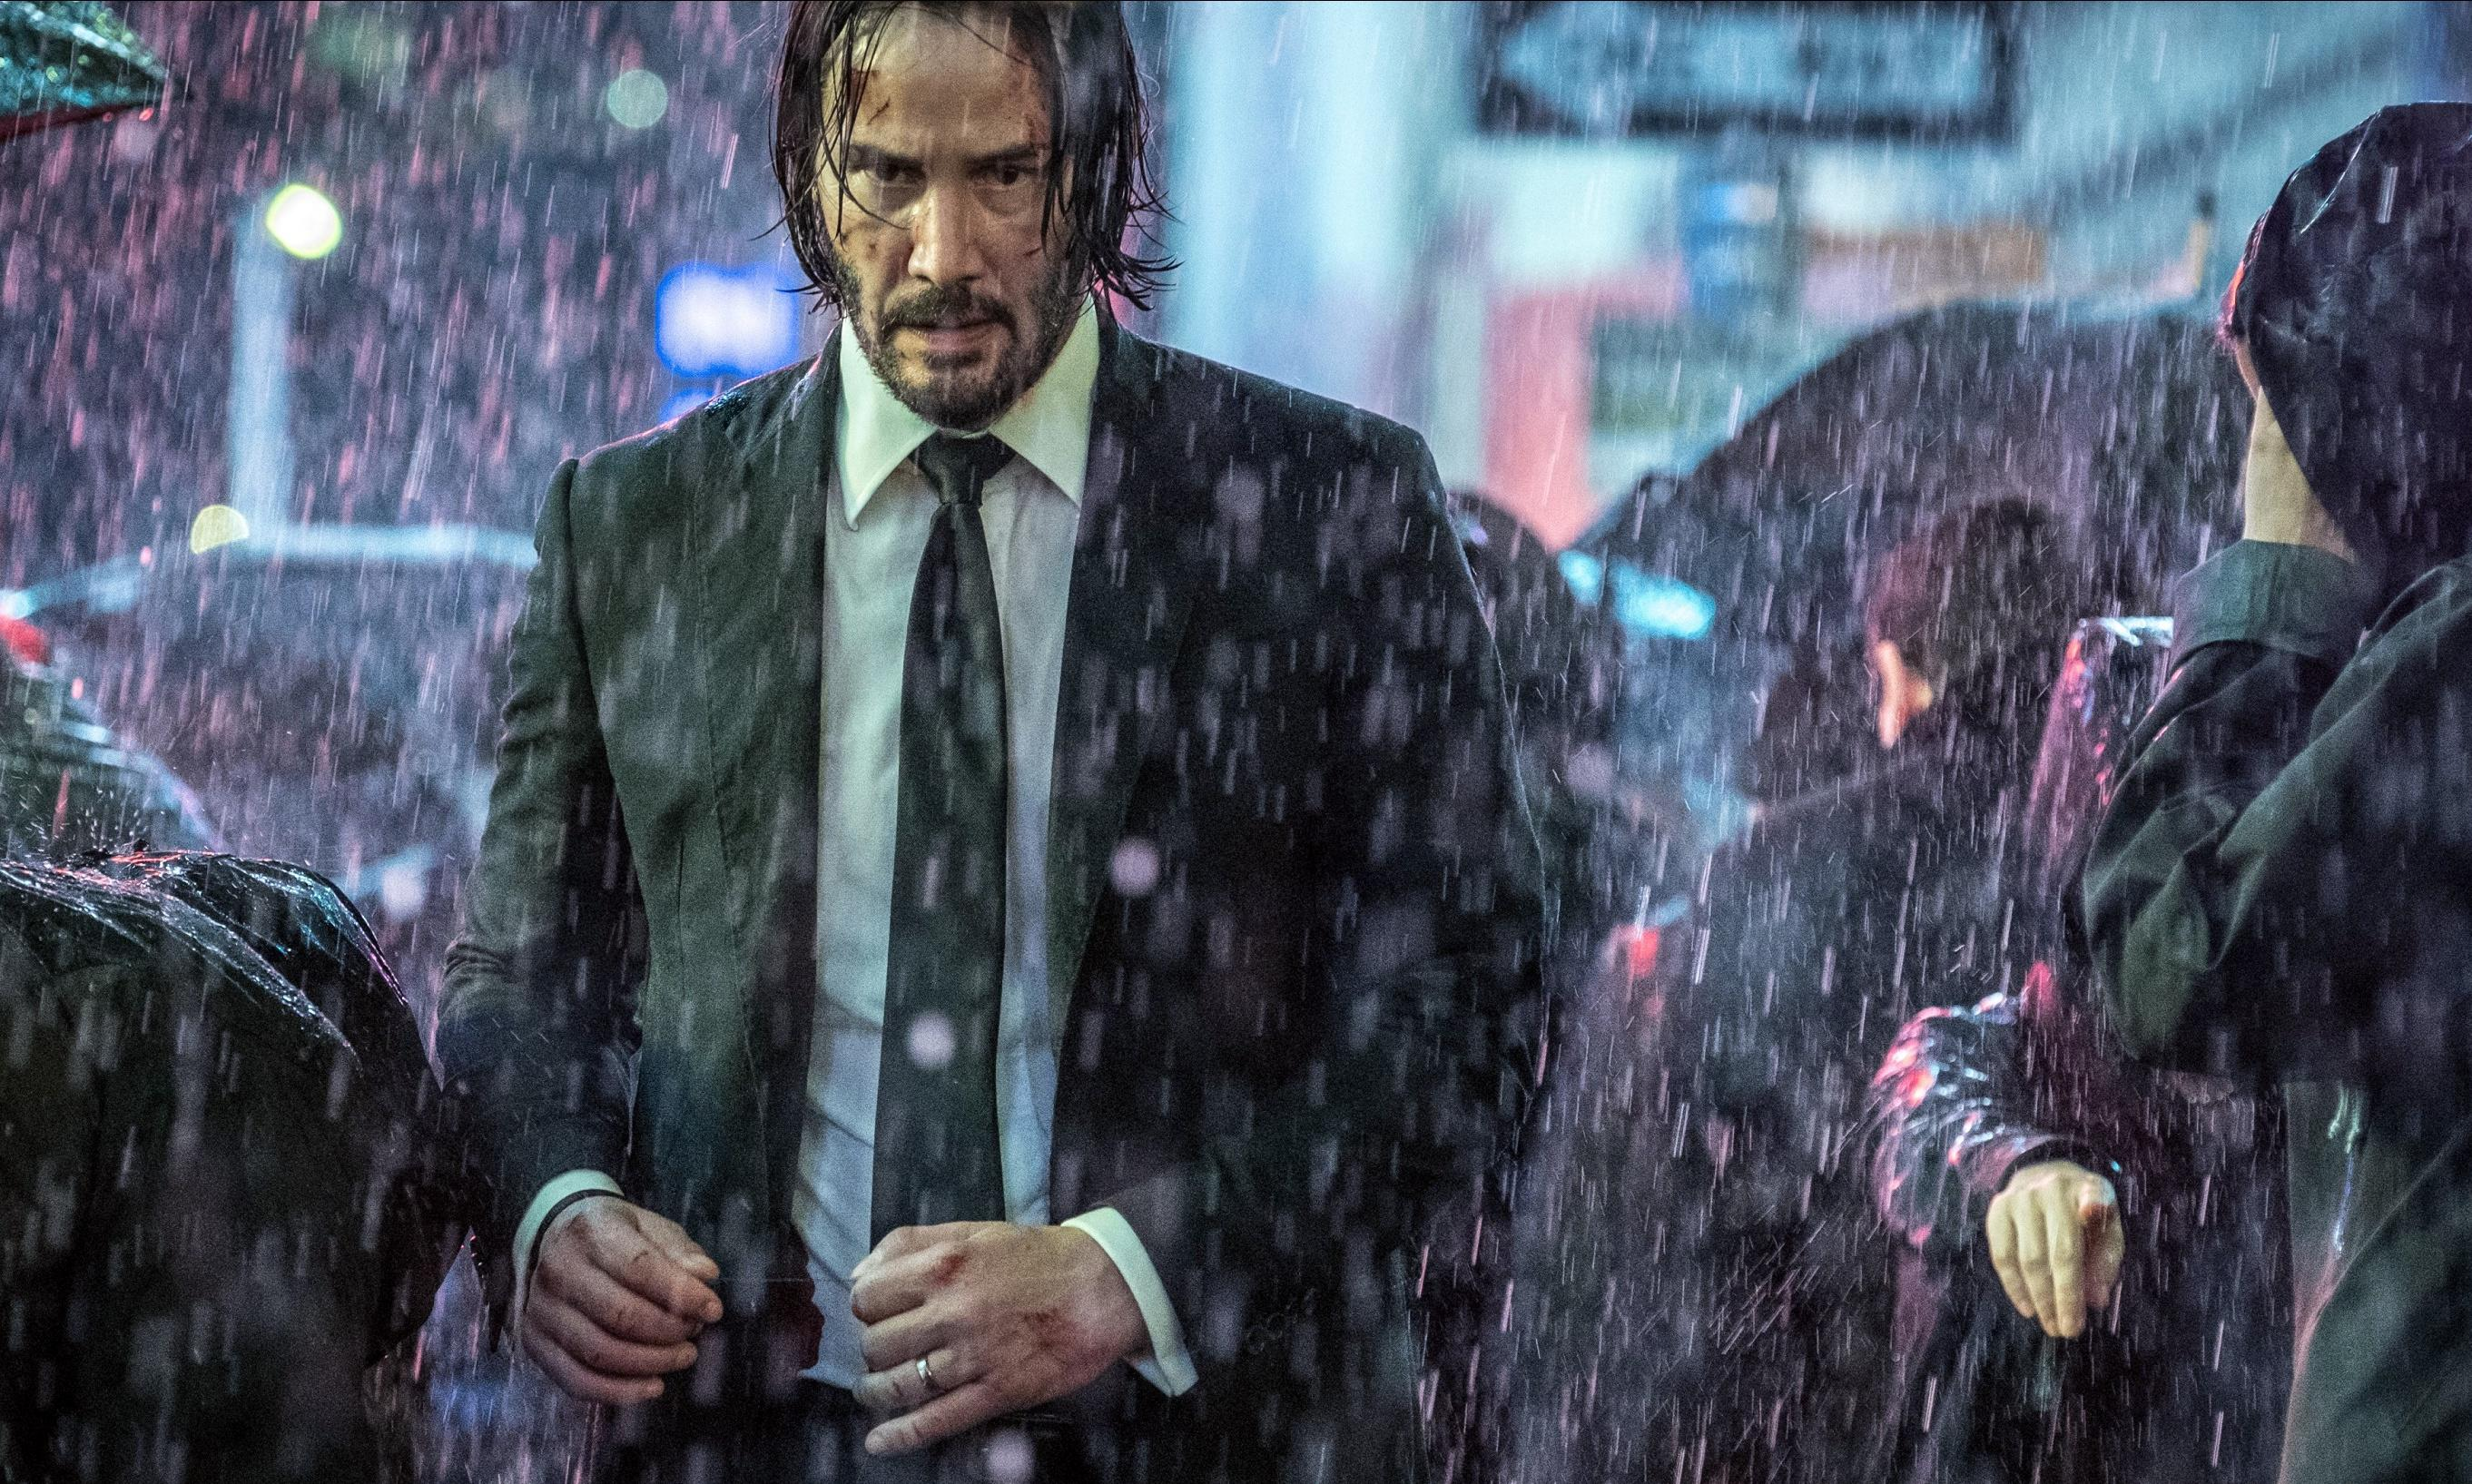 John Wick: Chapter 3: Parabellum review – franchise bloat for Keanu Reeves' hitman